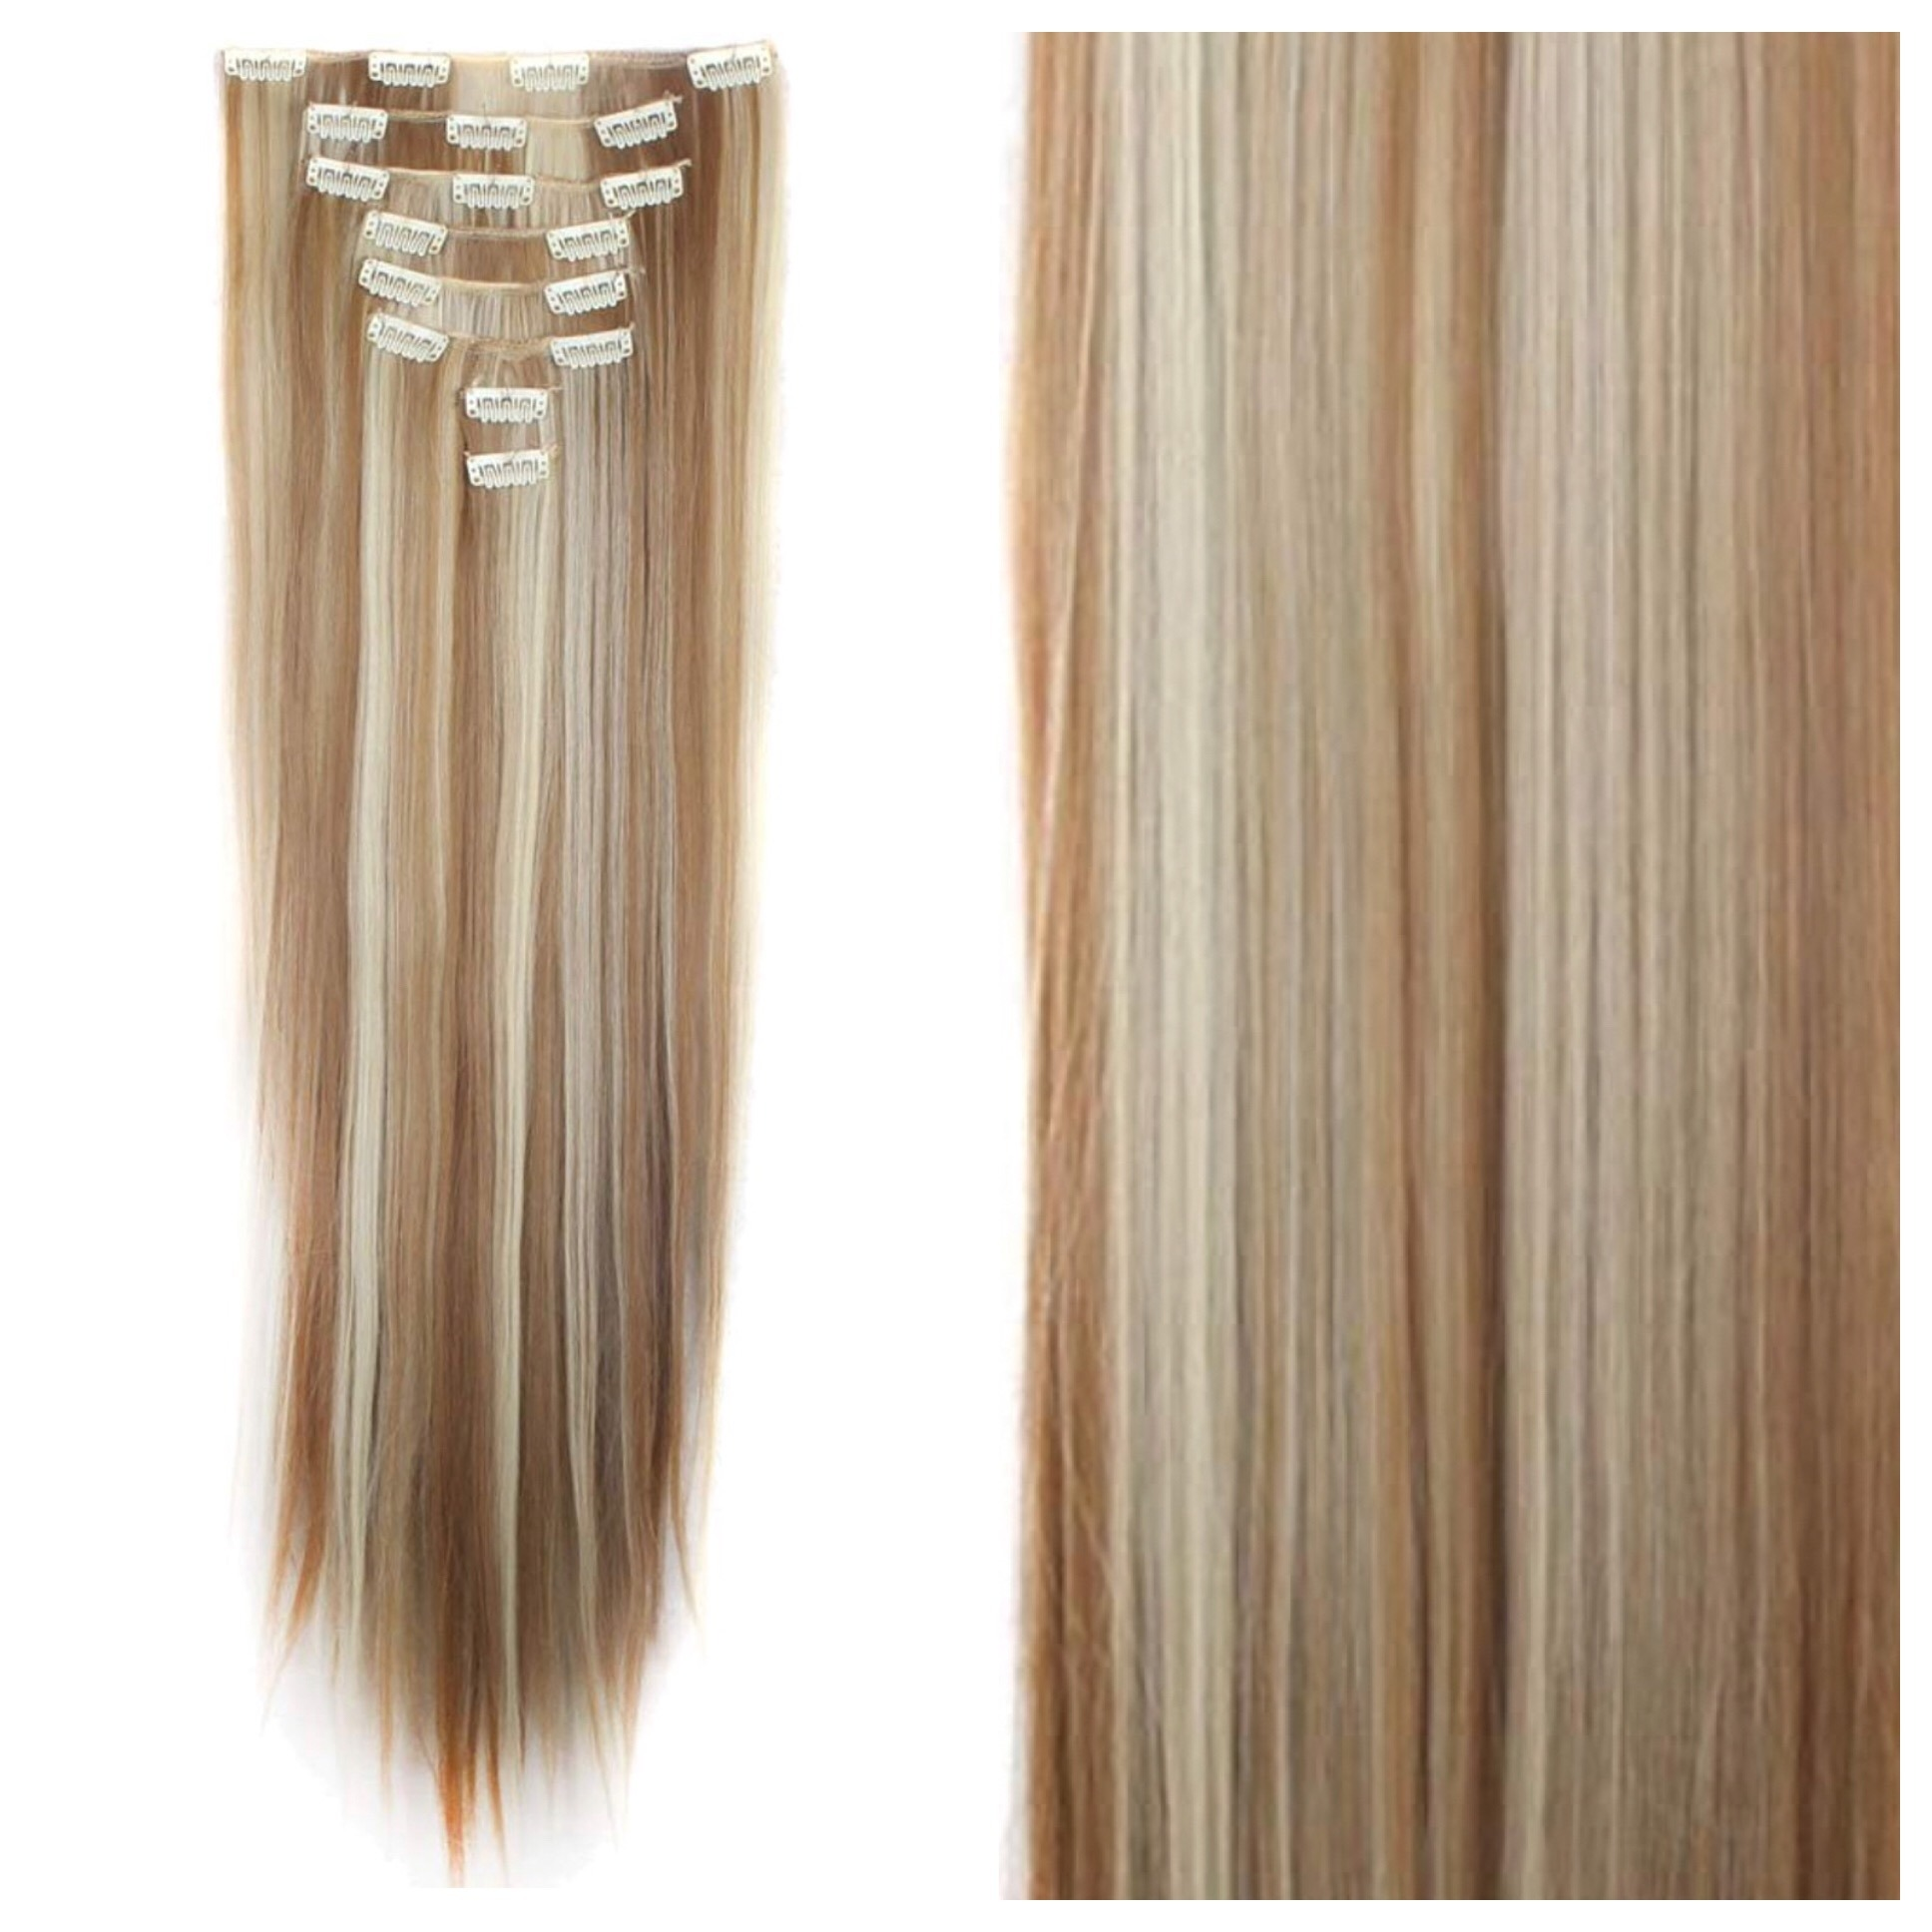 Ginger Brown With Blonde Highlights Clip In Hair Extensions 26